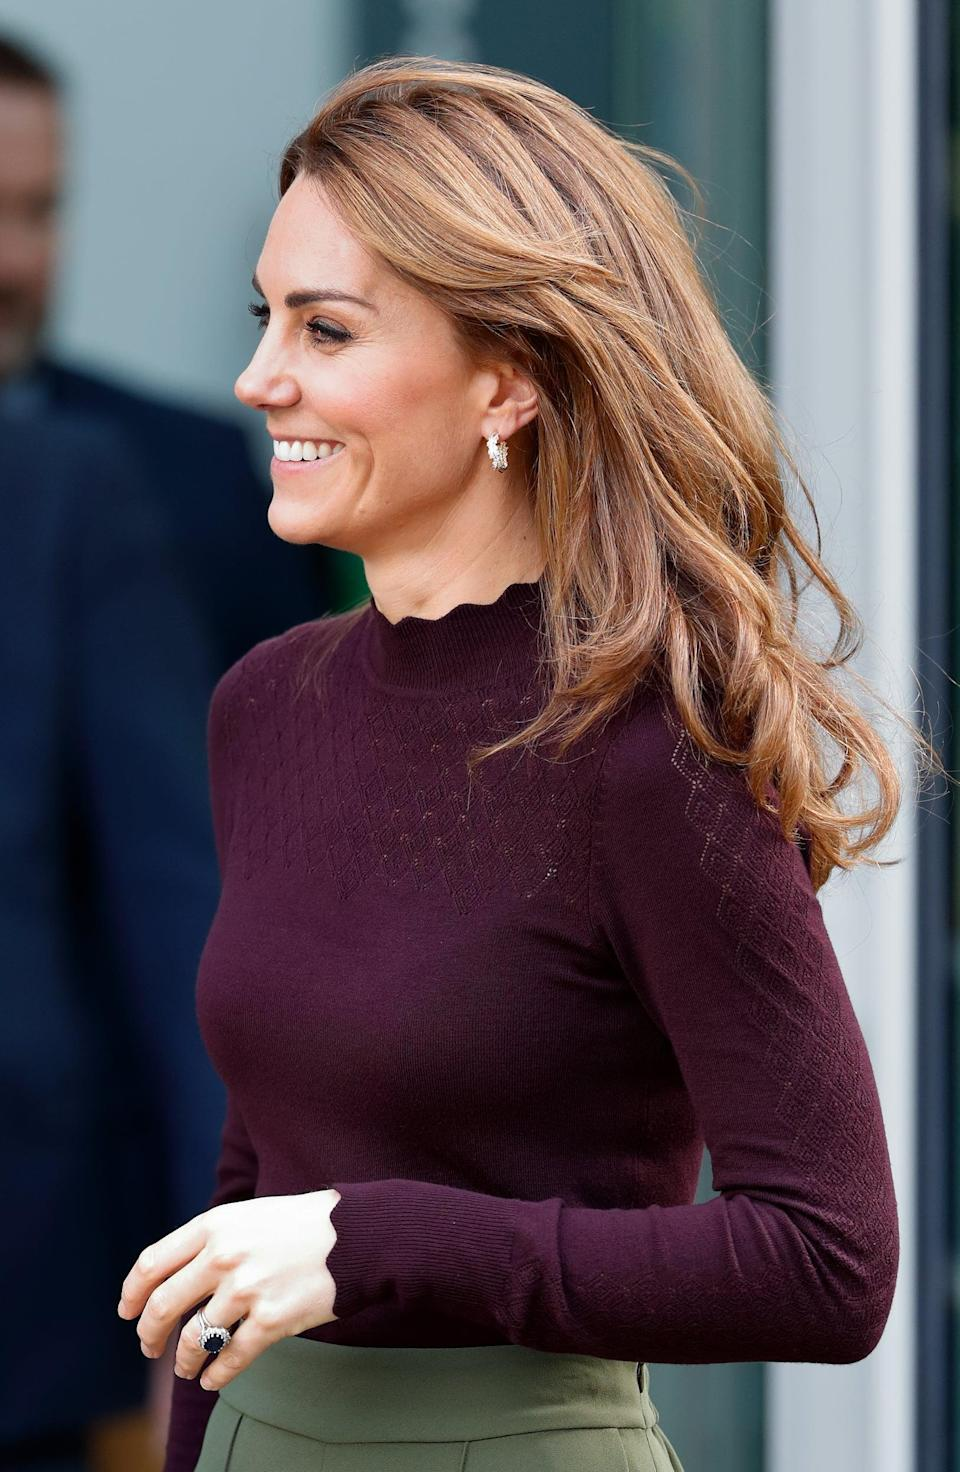 "<p>The duchess stepped out for an engagement during the first week of October, with a new subtle hair change. She added long, layered curtain bangs to her golden highlights, creating a face-framing definition for a pretty autumnal switch-up. <a href=""https://www.popsugar.co.uk/beauty/Princess-Diana-Hair-45132715"" class=""link rapid-noclick-resp"" rel=""nofollow noopener"" target=""_blank"" data-ylk=""slk:Similar to Princess Diana"">Similar to Princess Diana</a>, Middleton prefers subtle changes to her hair, so she doesn't take the attention away from the work she is doing - and possibly also because she doesn't want to commit to such a dramatic hairstyle change.</p>"